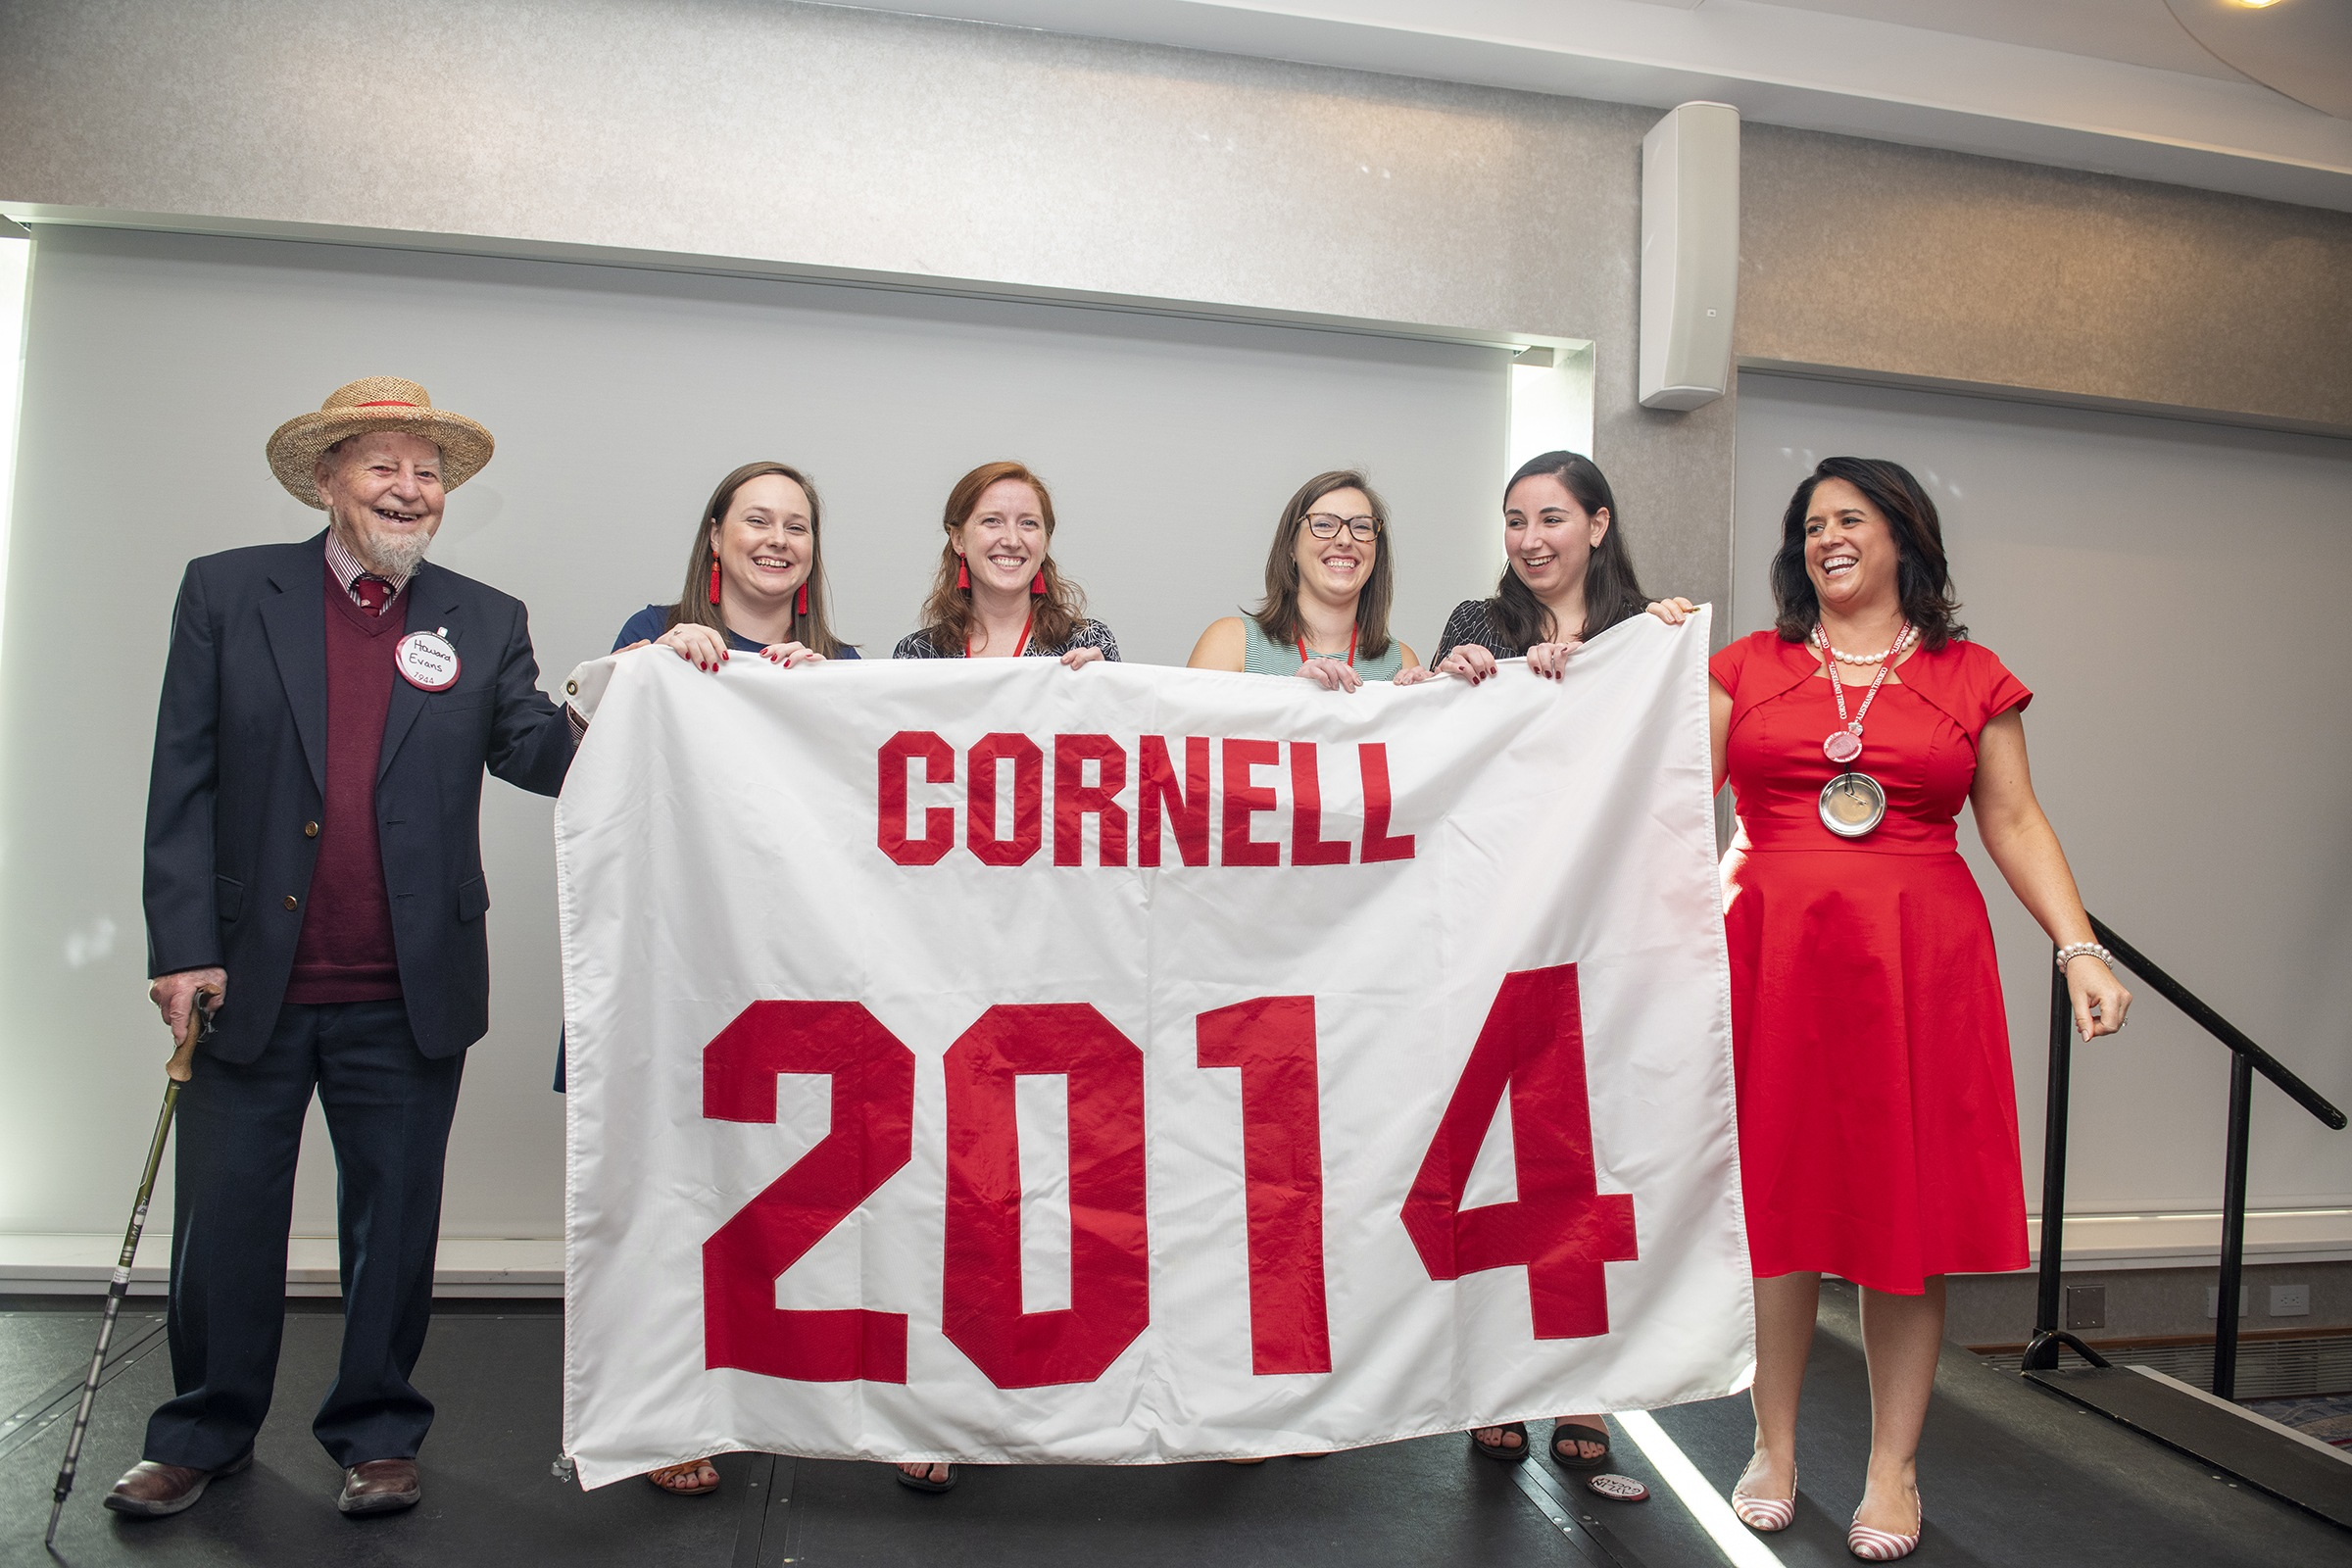 Howard Evans '44 (left) presents a new Class of 2014 banner to Reunion chairs from the Class of 2014